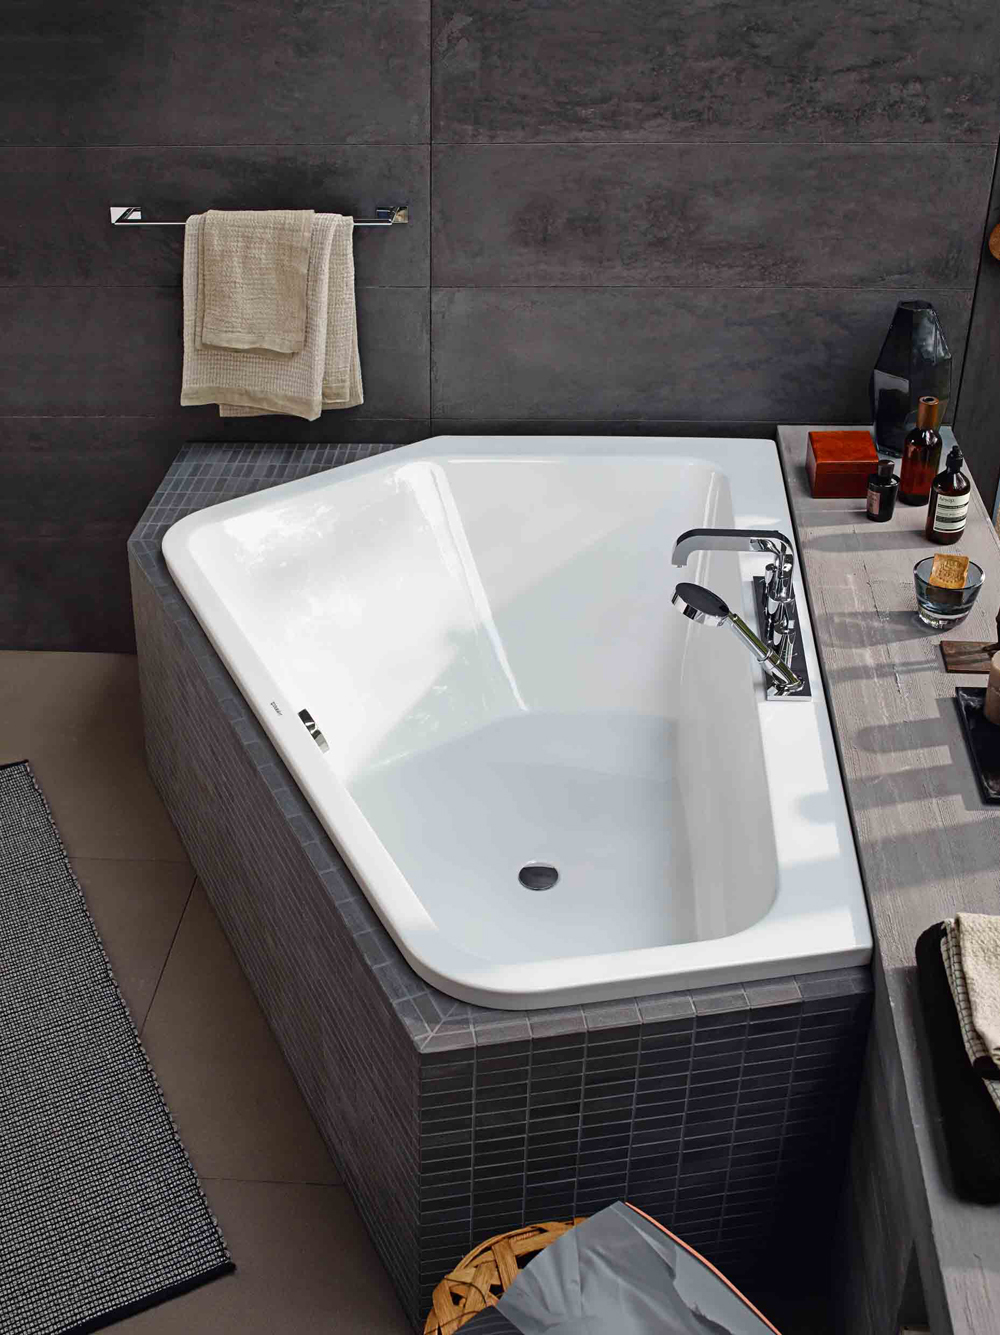 baignoire pa ova 5 de duravit inspiration bain. Black Bedroom Furniture Sets. Home Design Ideas